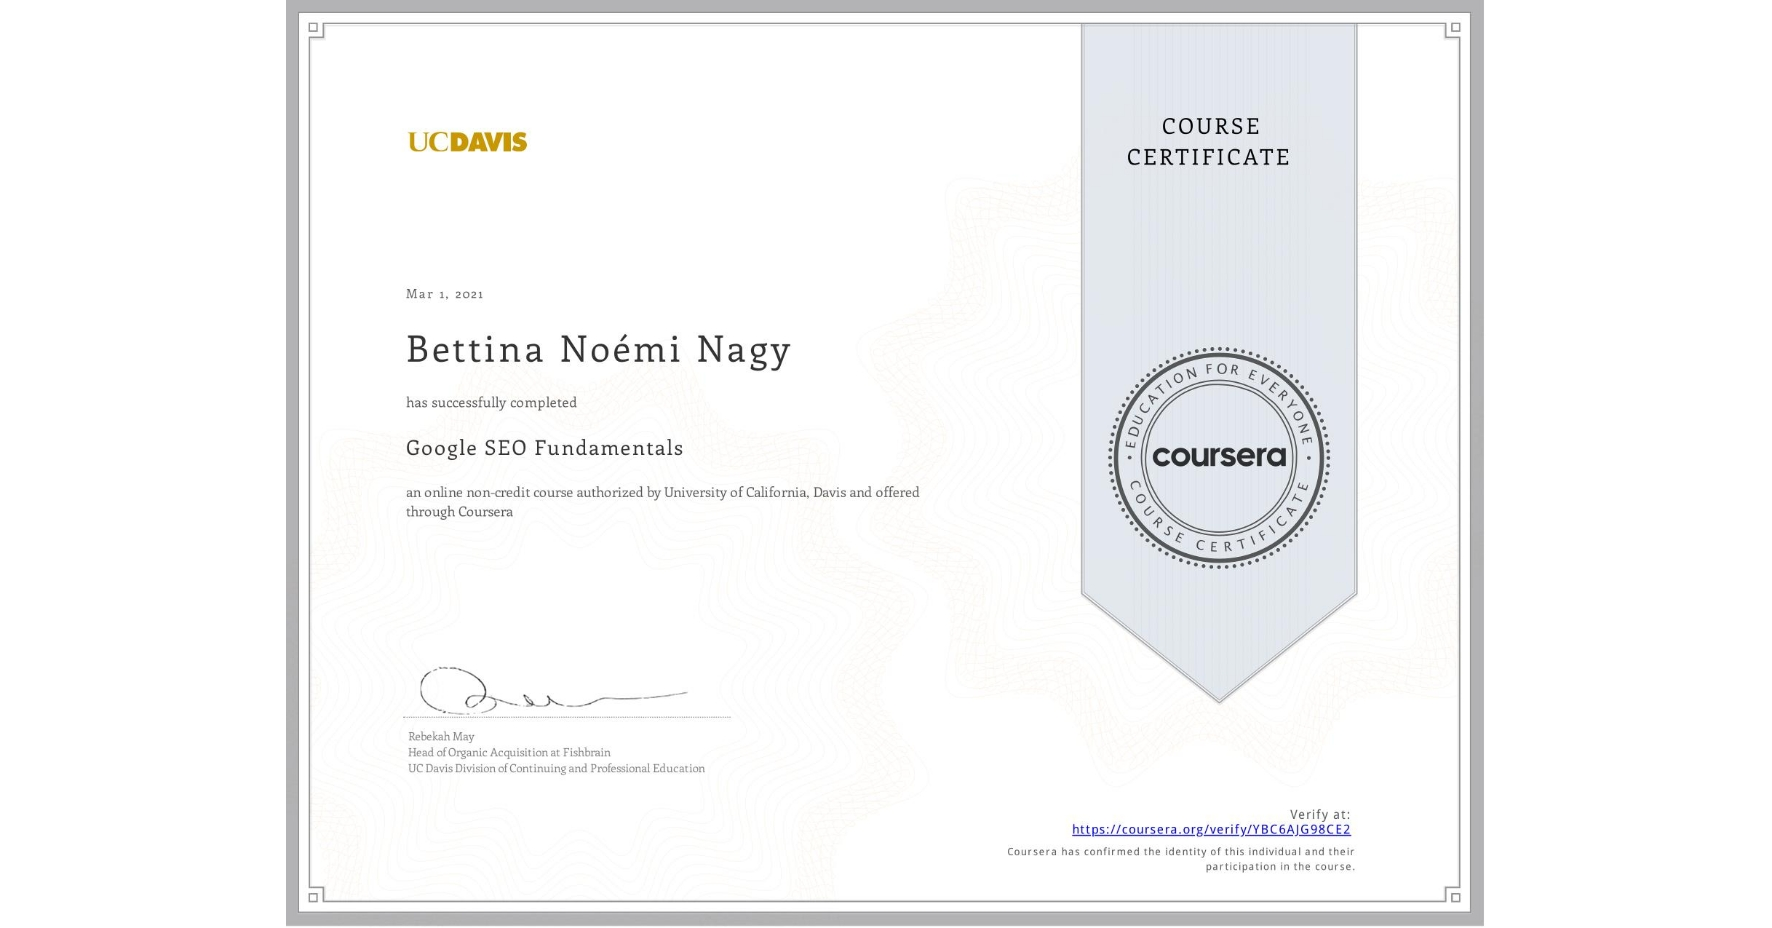 View certificate for Bettina Noémi Nagy, Search Engine Optimization Fundamentals, an online non-credit course authorized by University of California, Davis and offered through Coursera